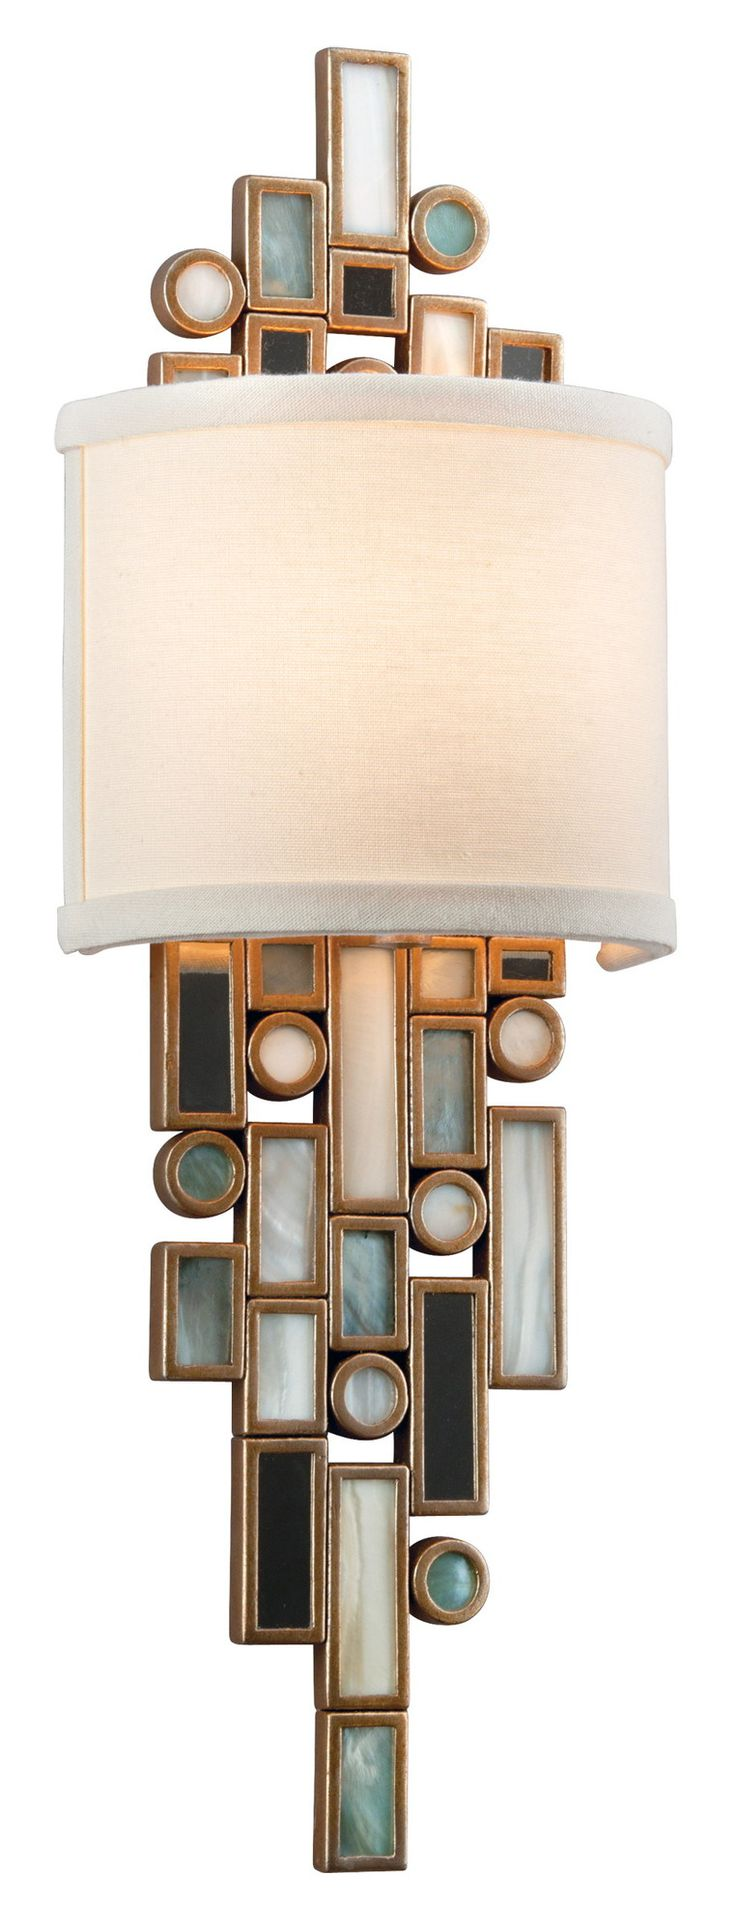 Corbett Lighting Dolcetti Wall Sconce in Silver